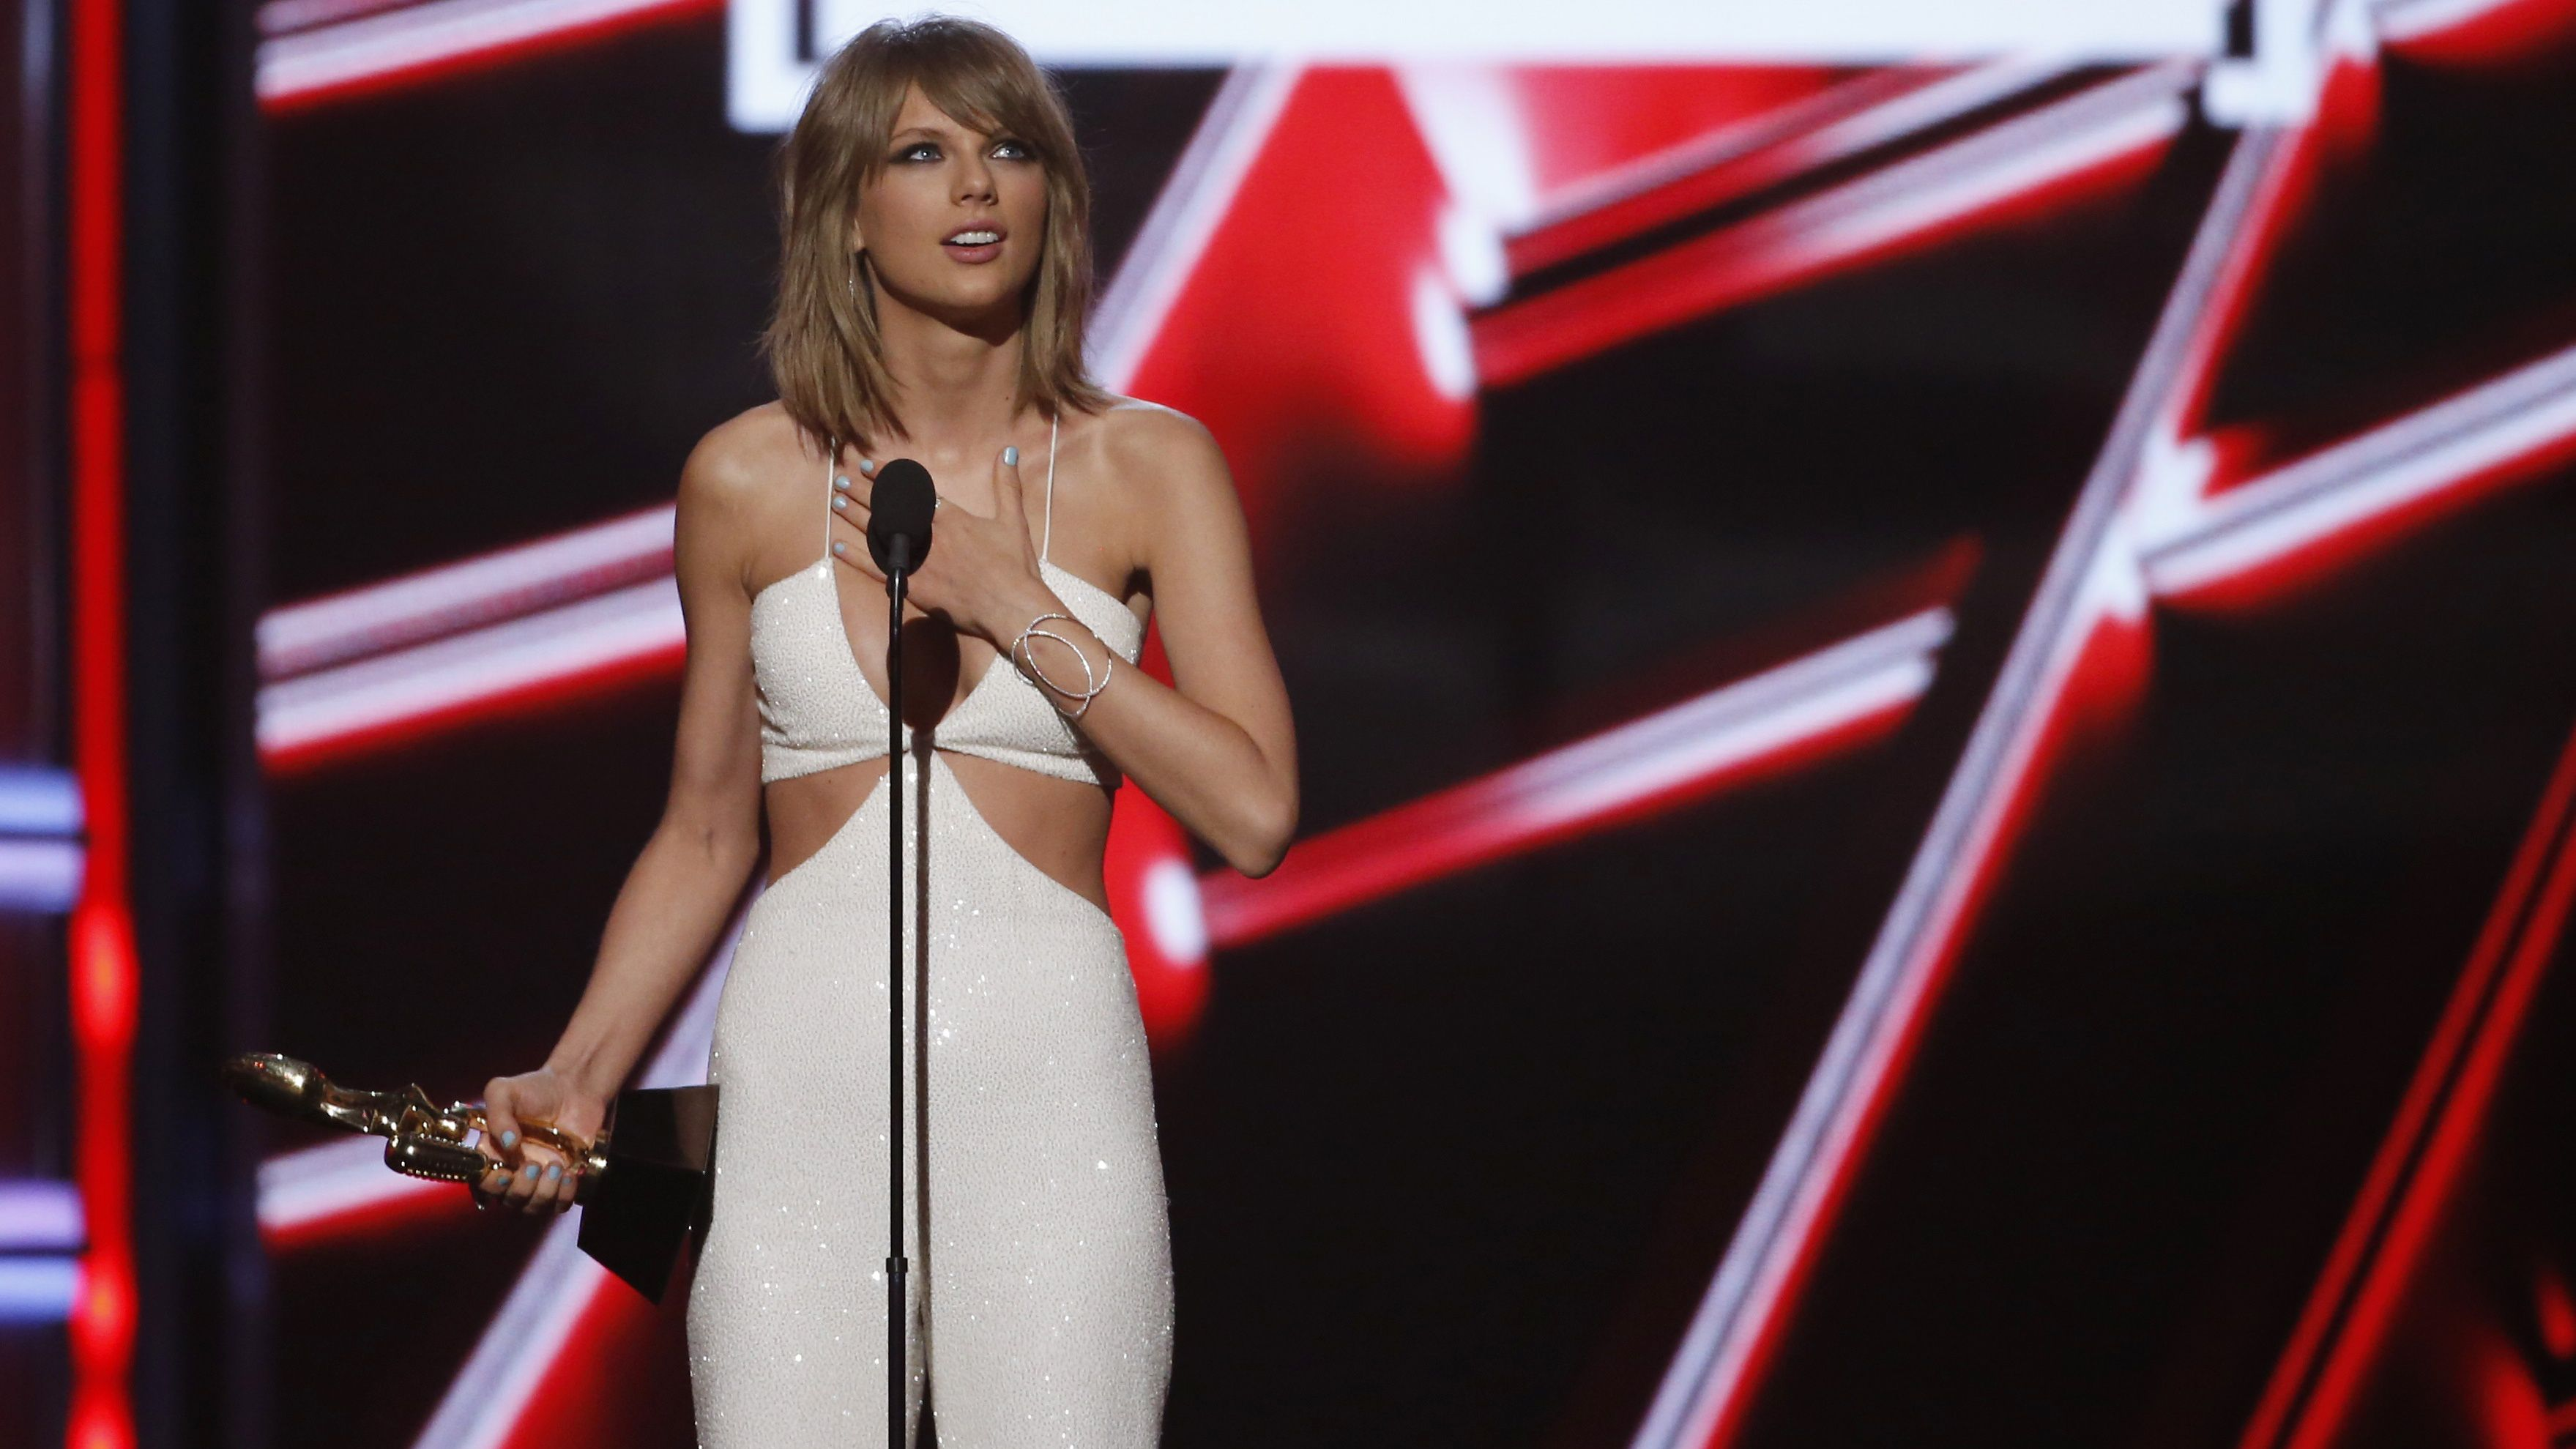 Awkward A Fashion Label Boasts About Taylor Swift S Outfit Then Realizes Its Own Design Is A Knockoff Quartz